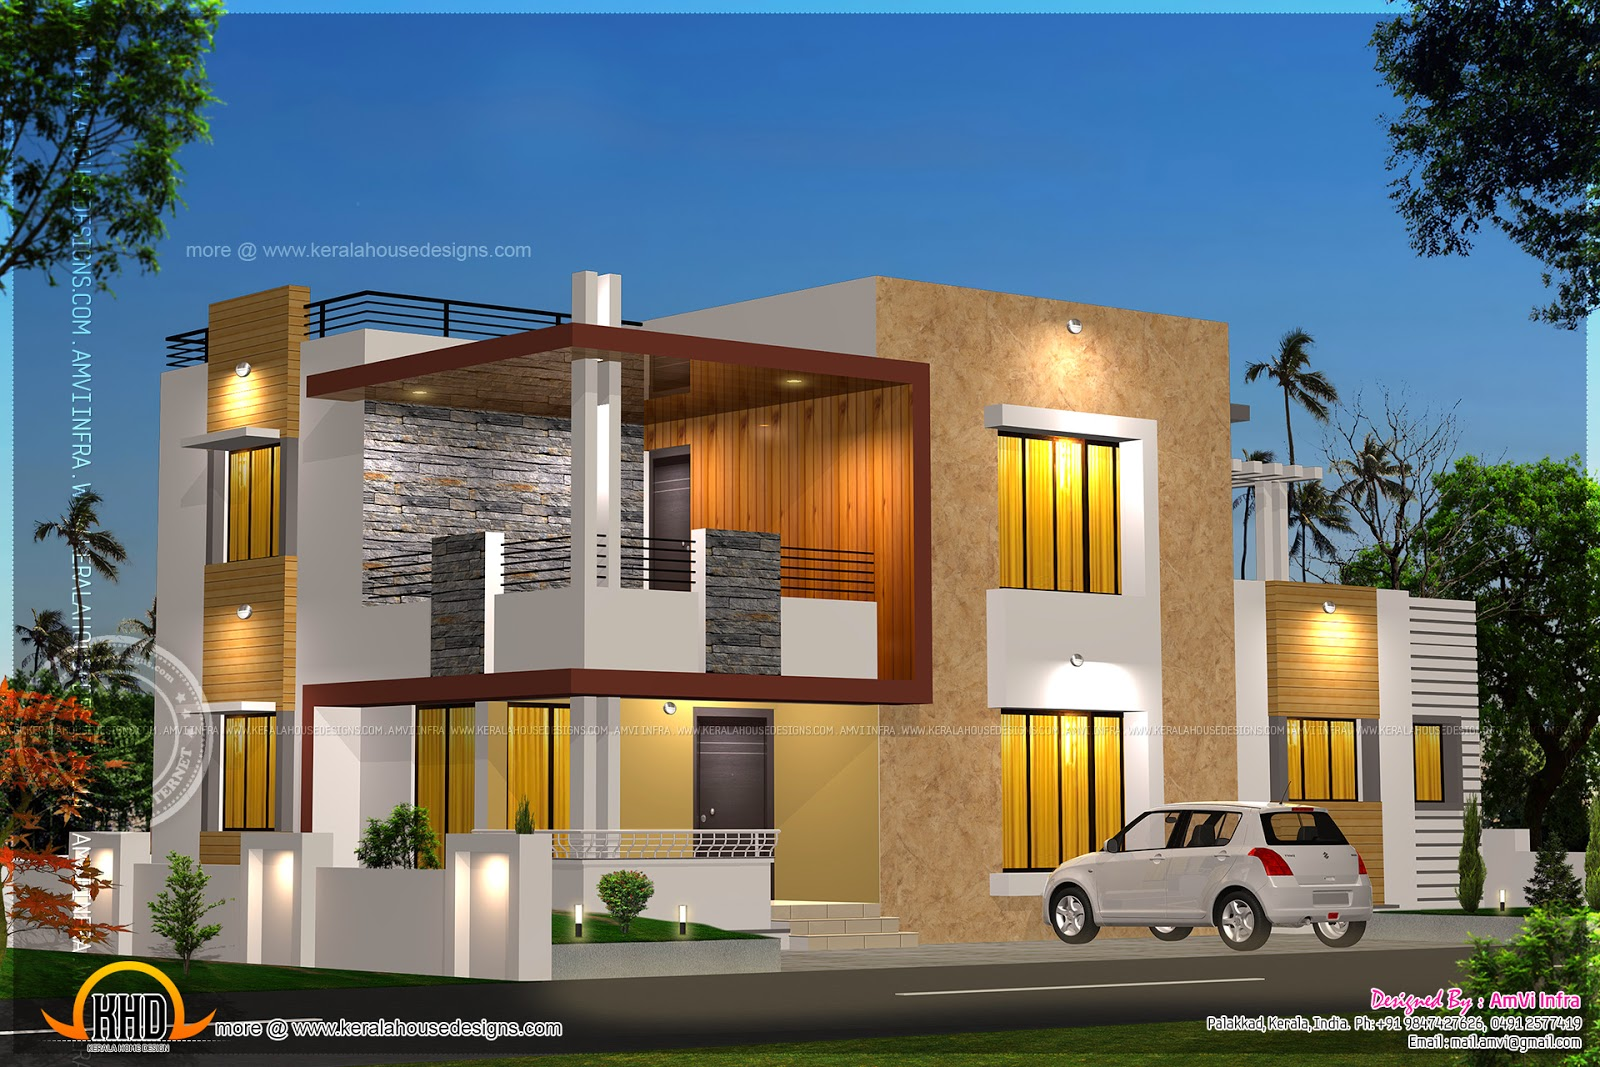 Floor plan and elevation of modern house kerala home design and floor plans for Mordern house